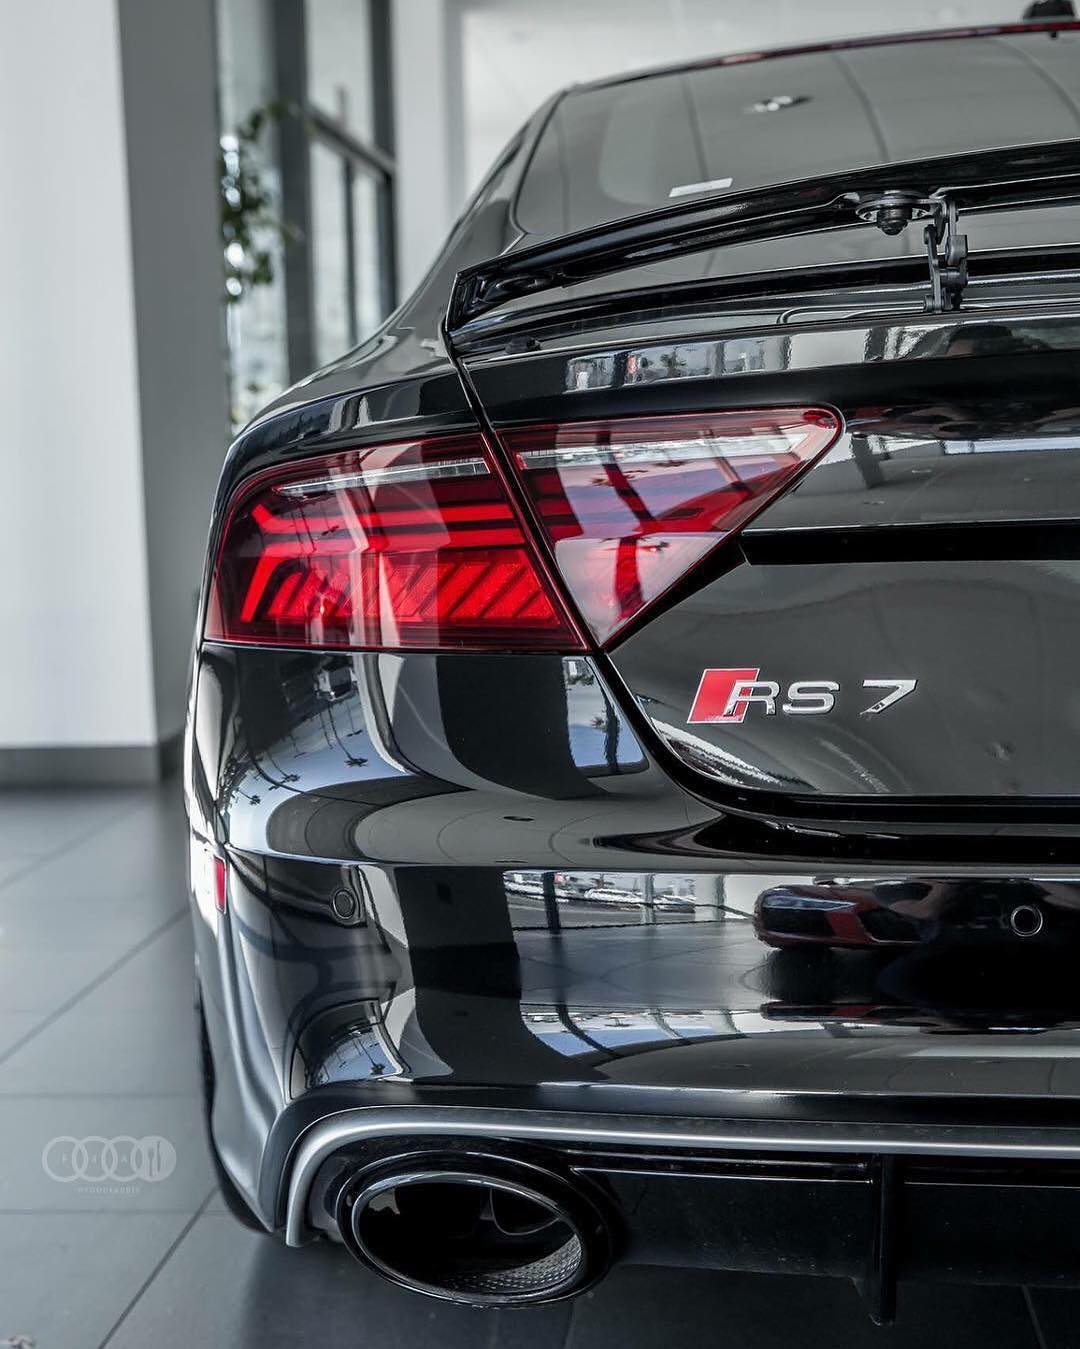 audi-rs7photo-food4audis_____________________________________________audi.jpg